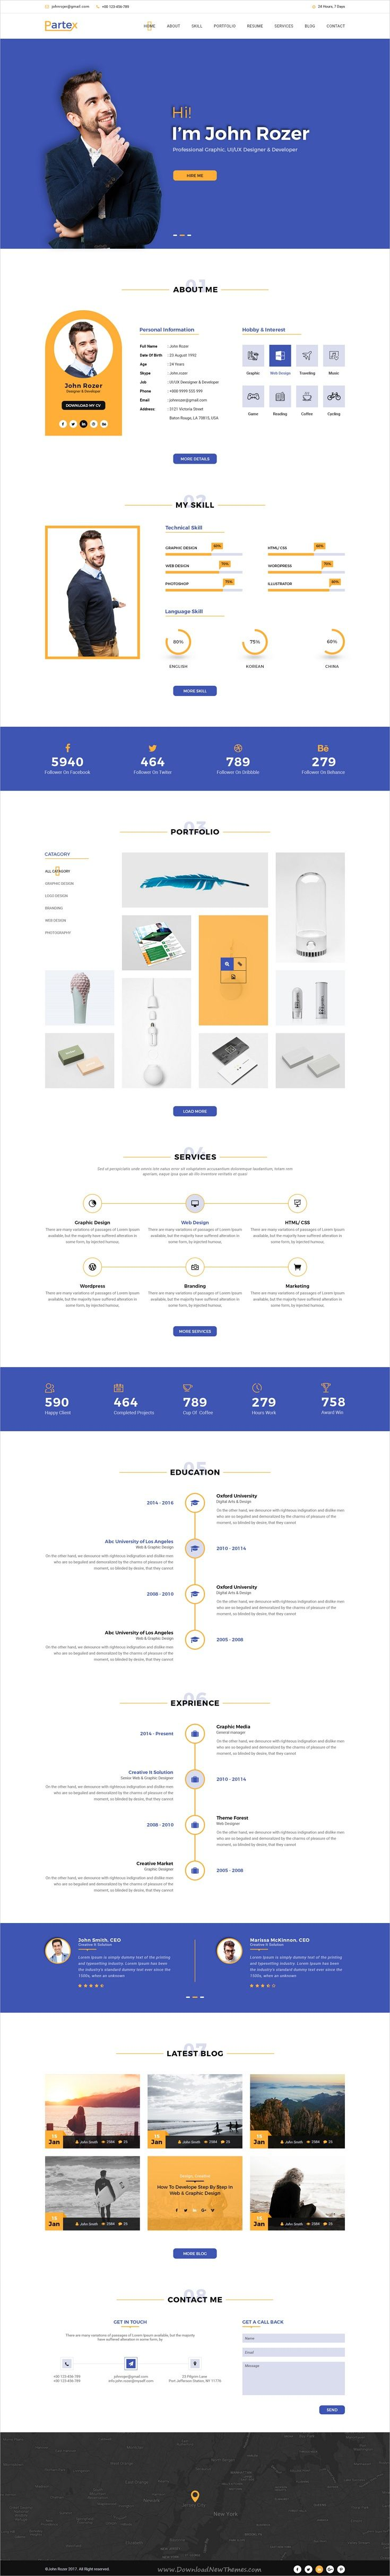 Partex is a #onepage #PSD template for #resume, CV and personal #portfolio showcase website download now➩ https://themeforest.net/item/partex-one-page-resume-cv-personal-portfolio-psd-template/19463522?ref=Datasata